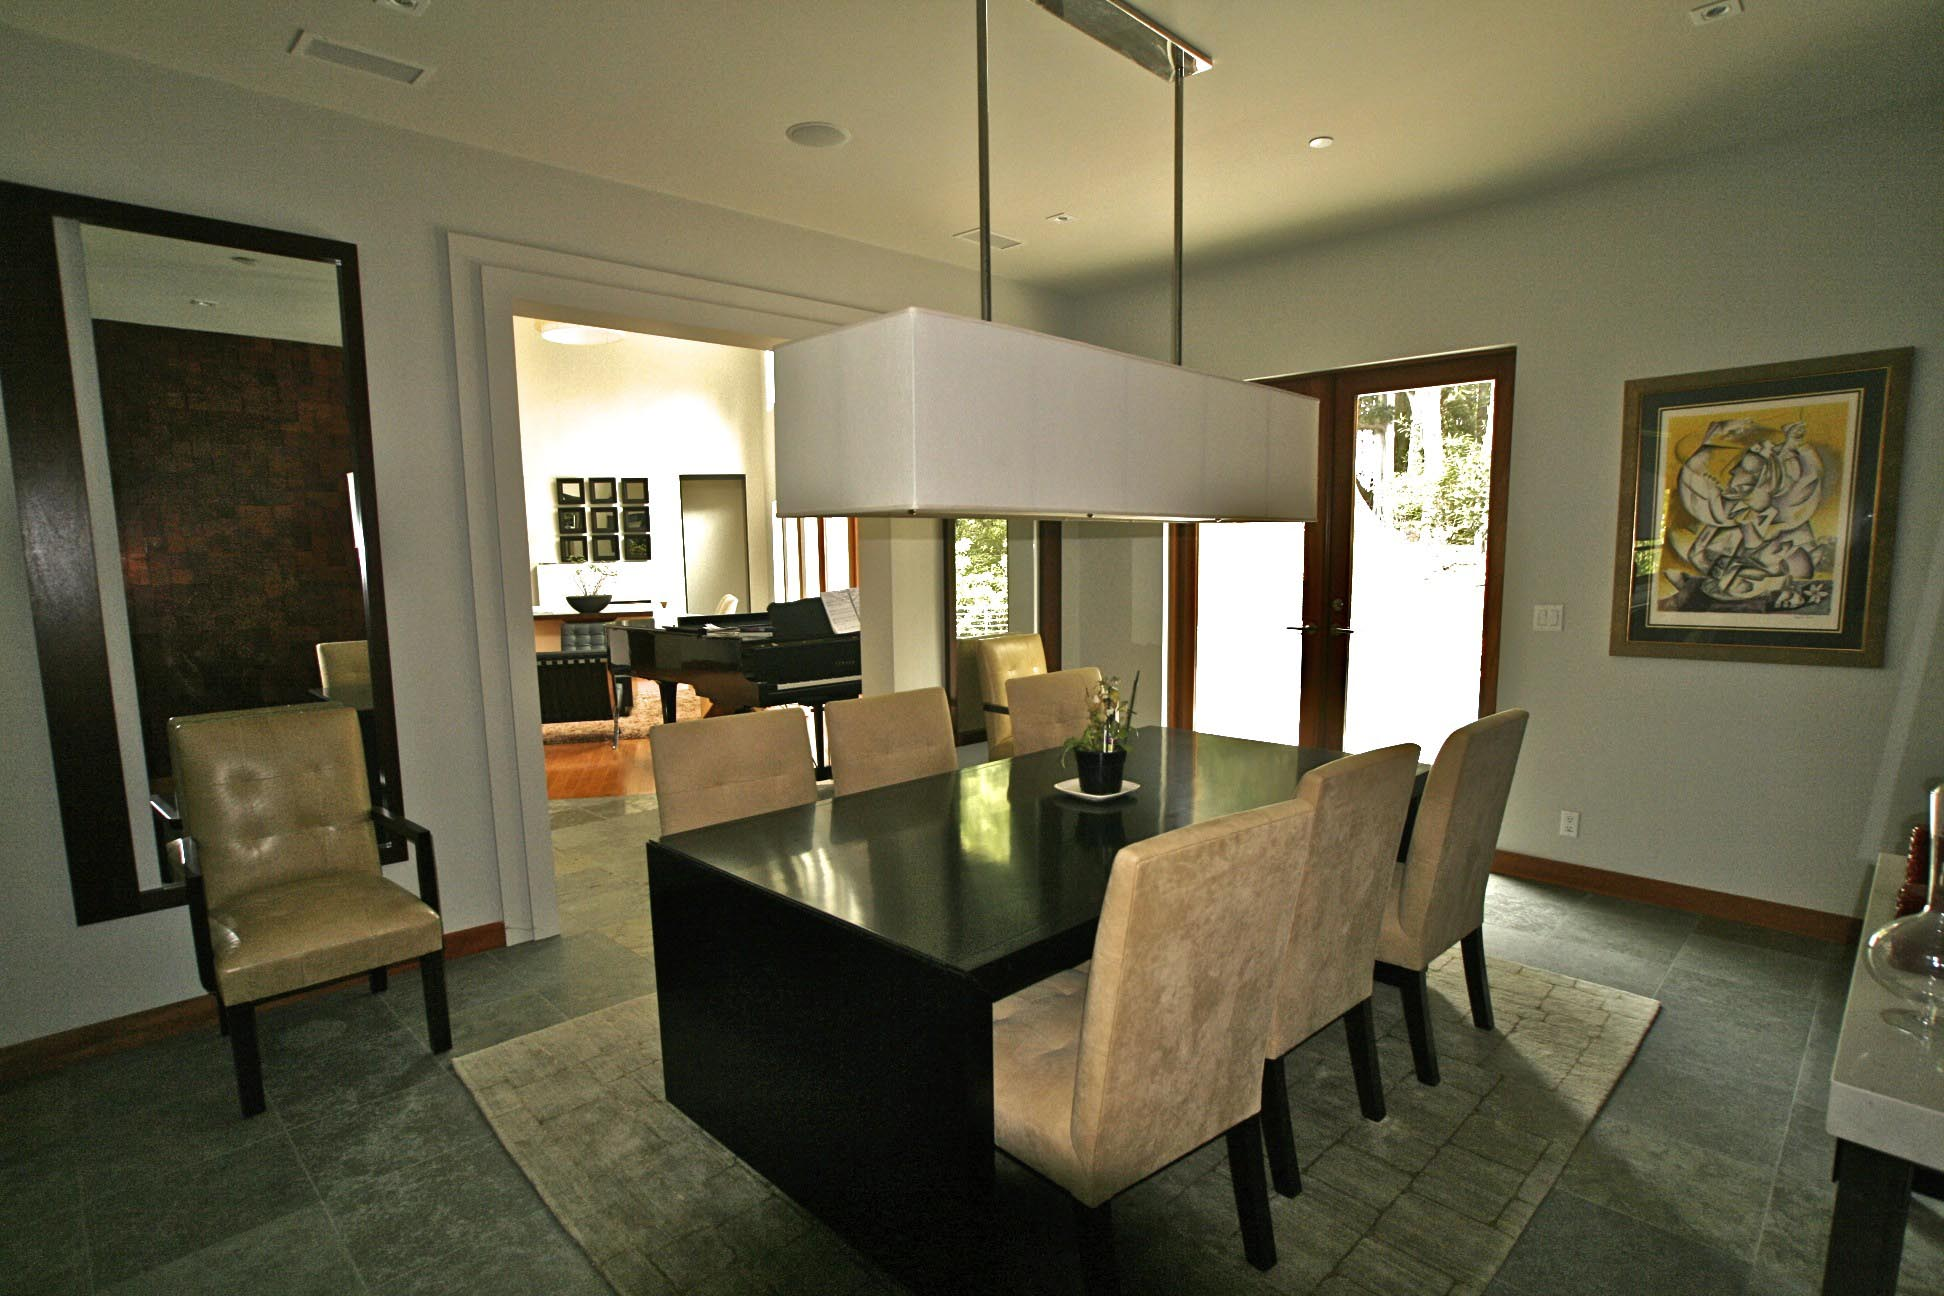 Dining Light Fixtures Make the Dining Room Bright and Warm